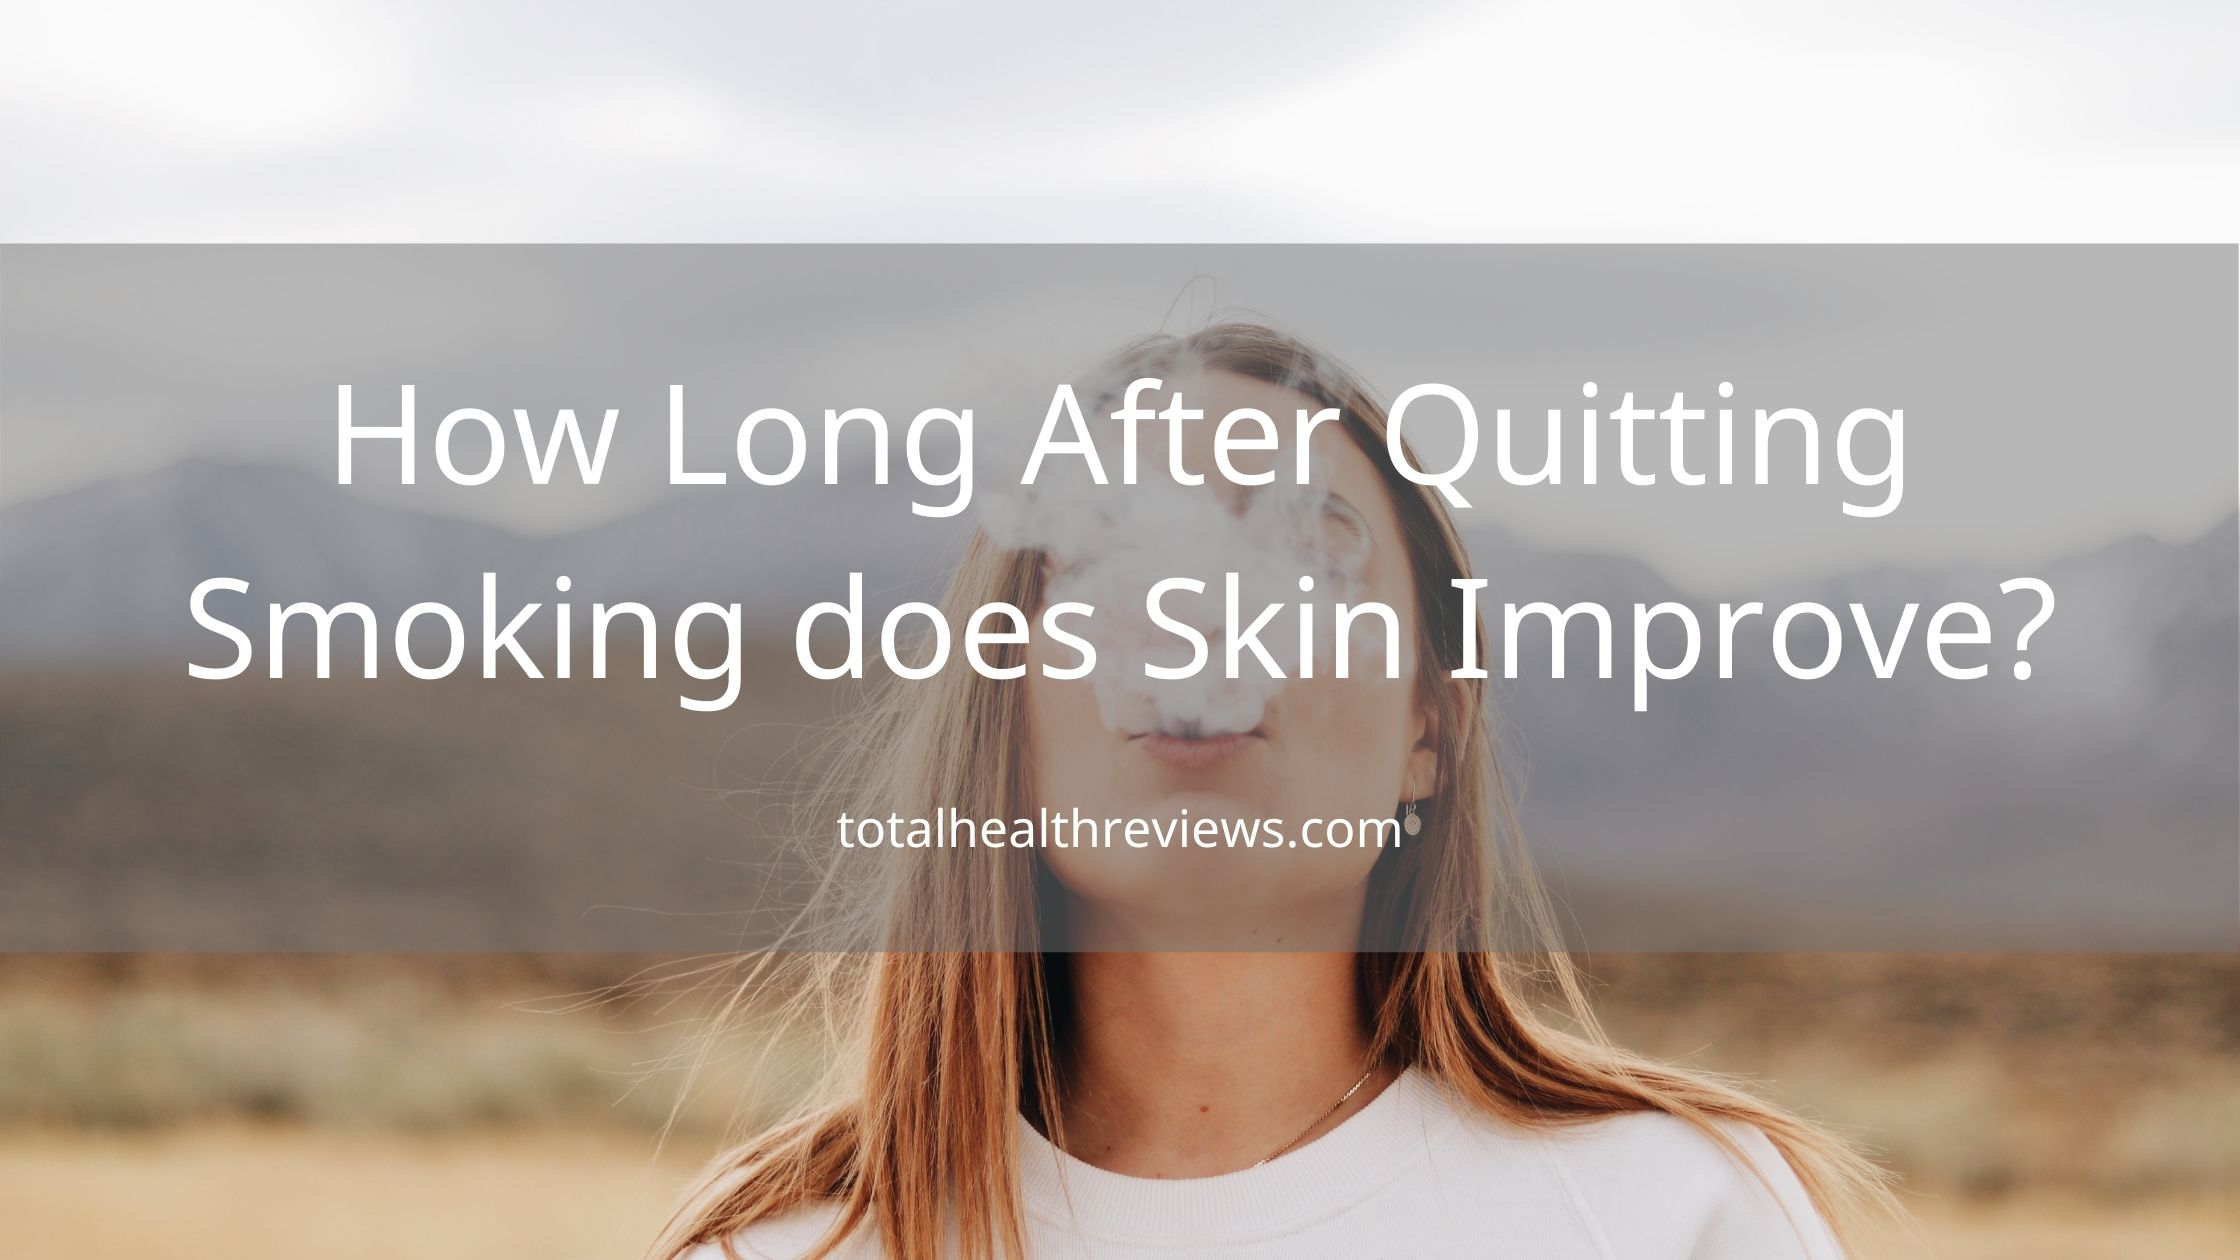 How Long After Quitting Smoking does Skin Improve?